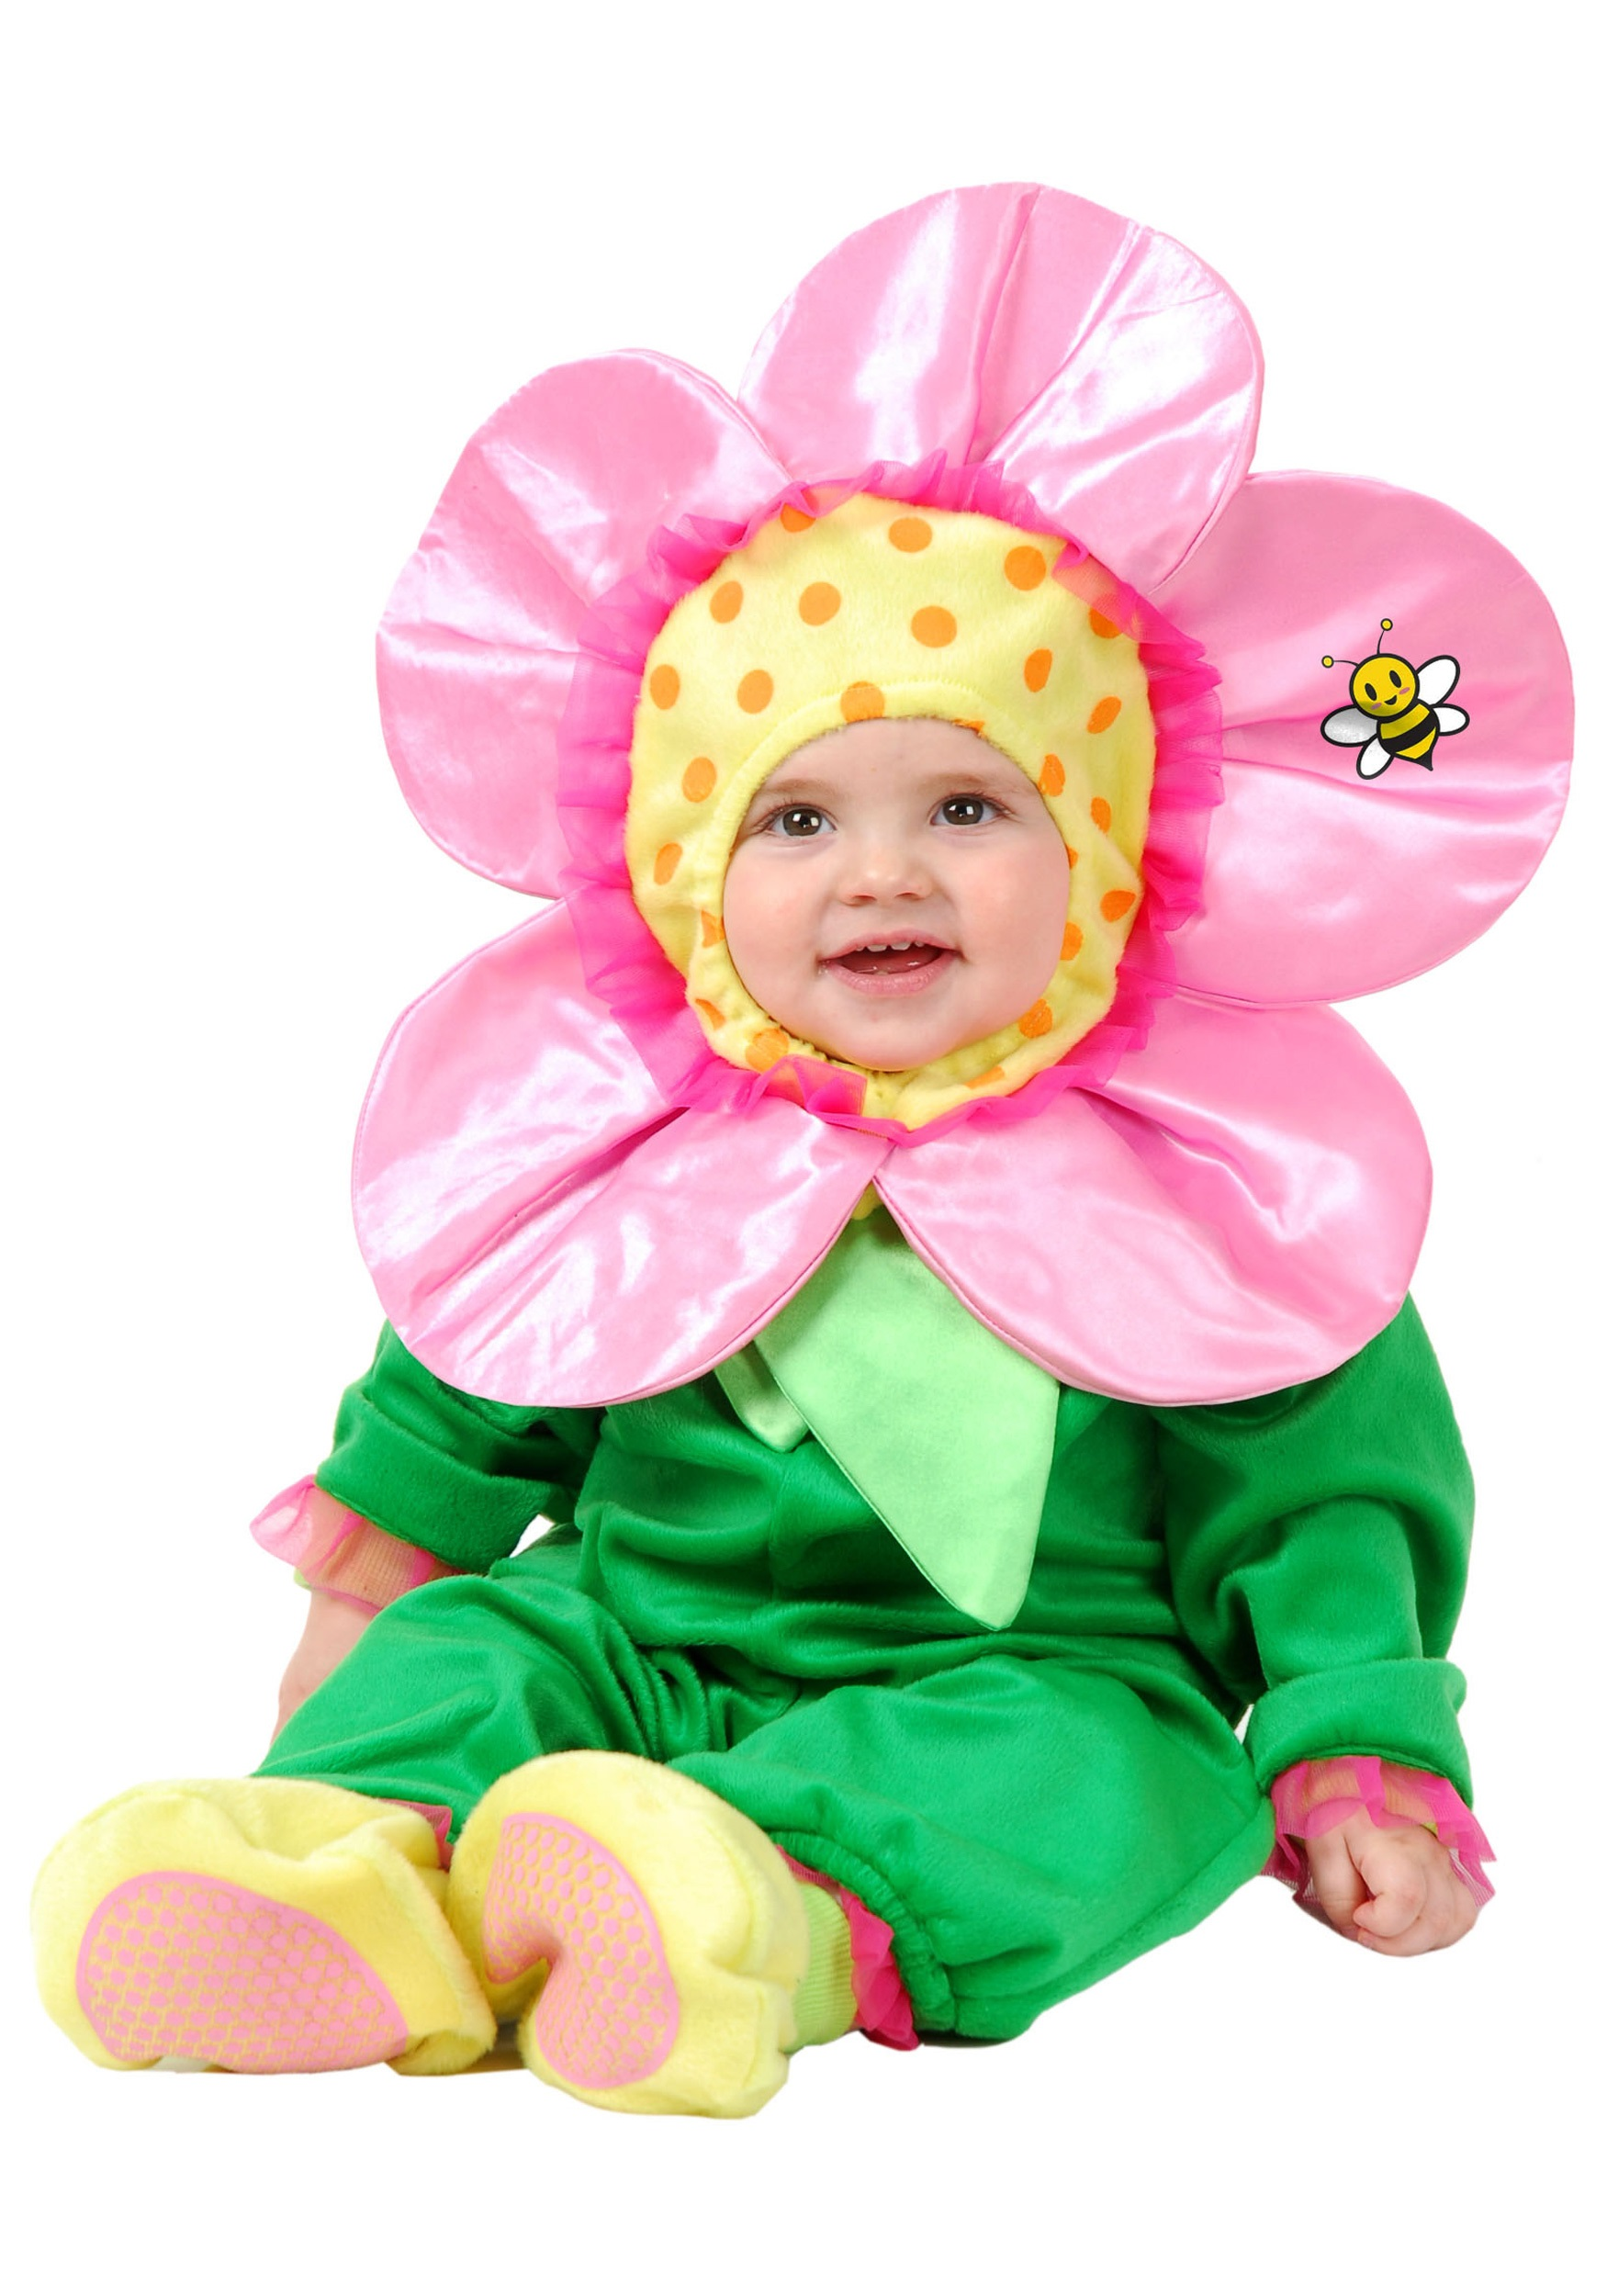 Little Flower Baby Costume  sc 1 st  Halloween Costume & Little Flower Baby Costume - Infant and Toddler Easter Costumes